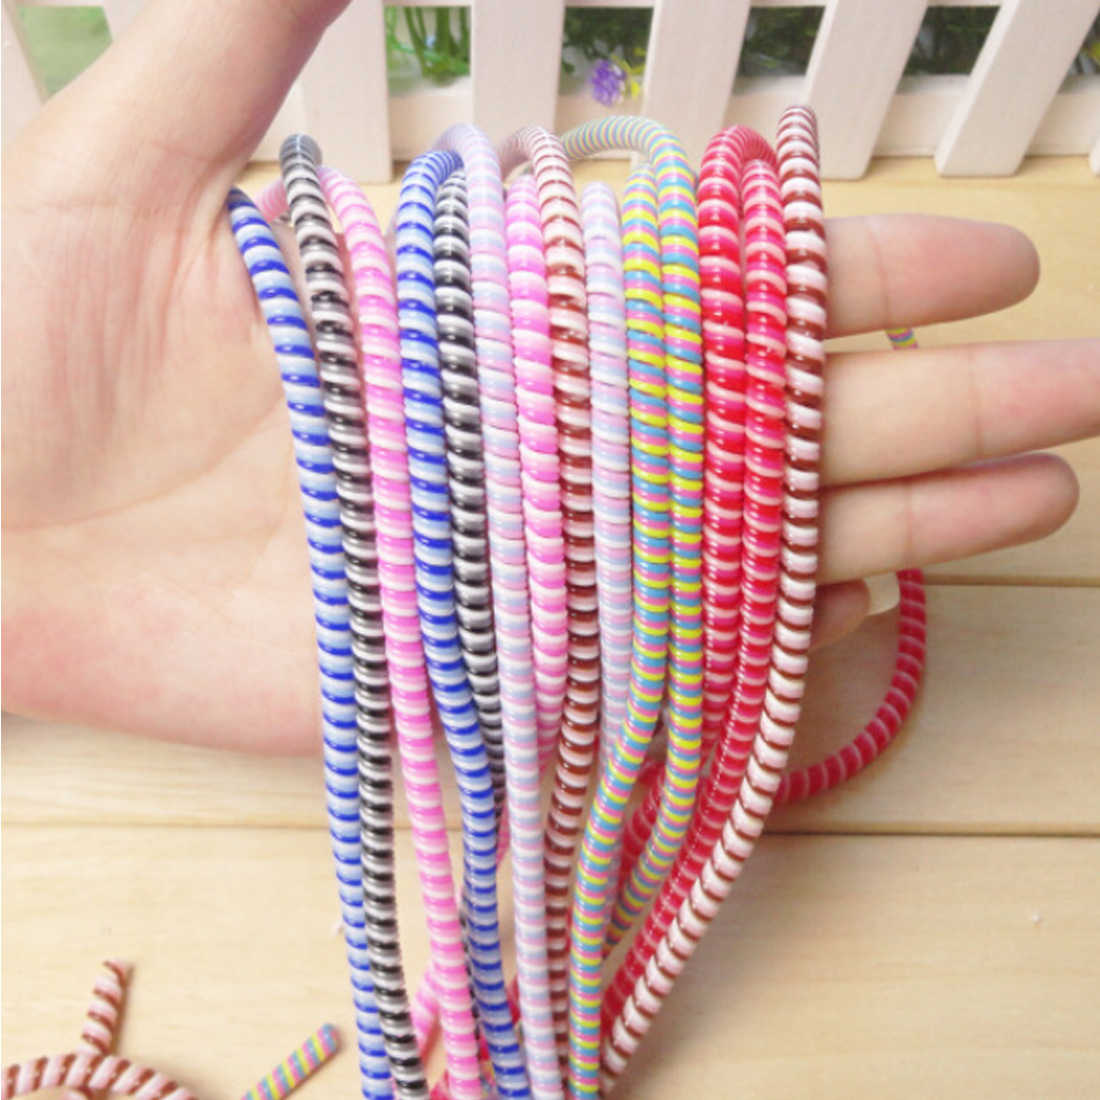 1.5M Solid Colorful TPU Spiral USB Charger Cable Cord Protector Wrap Cable Winder for Iphone Samsung S10 Note 9 10 Data Cable